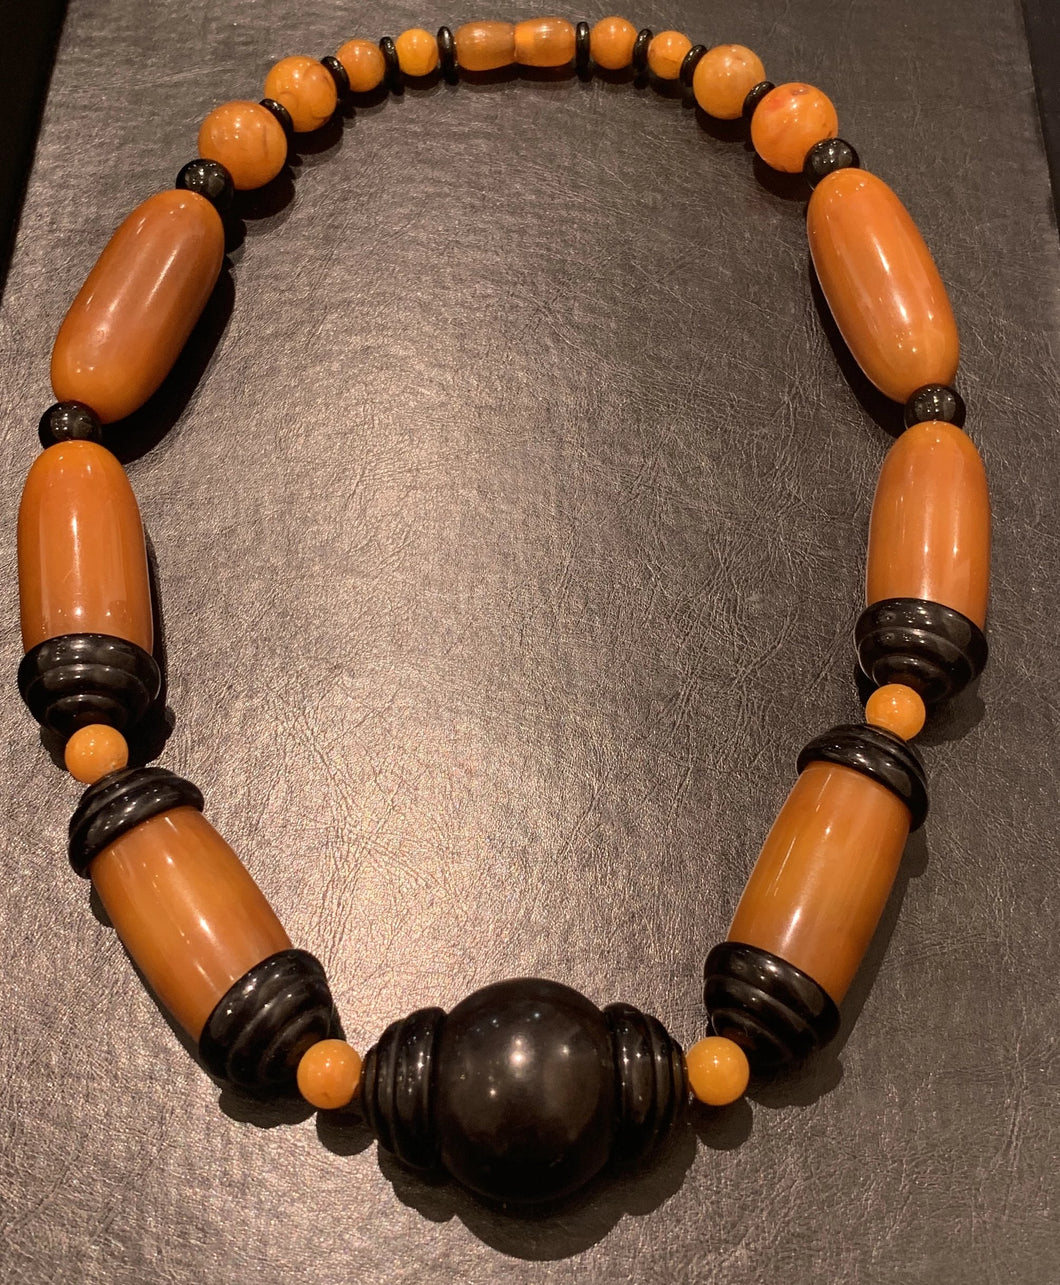 French Art Deco Chunky Galalith Bead Necklace